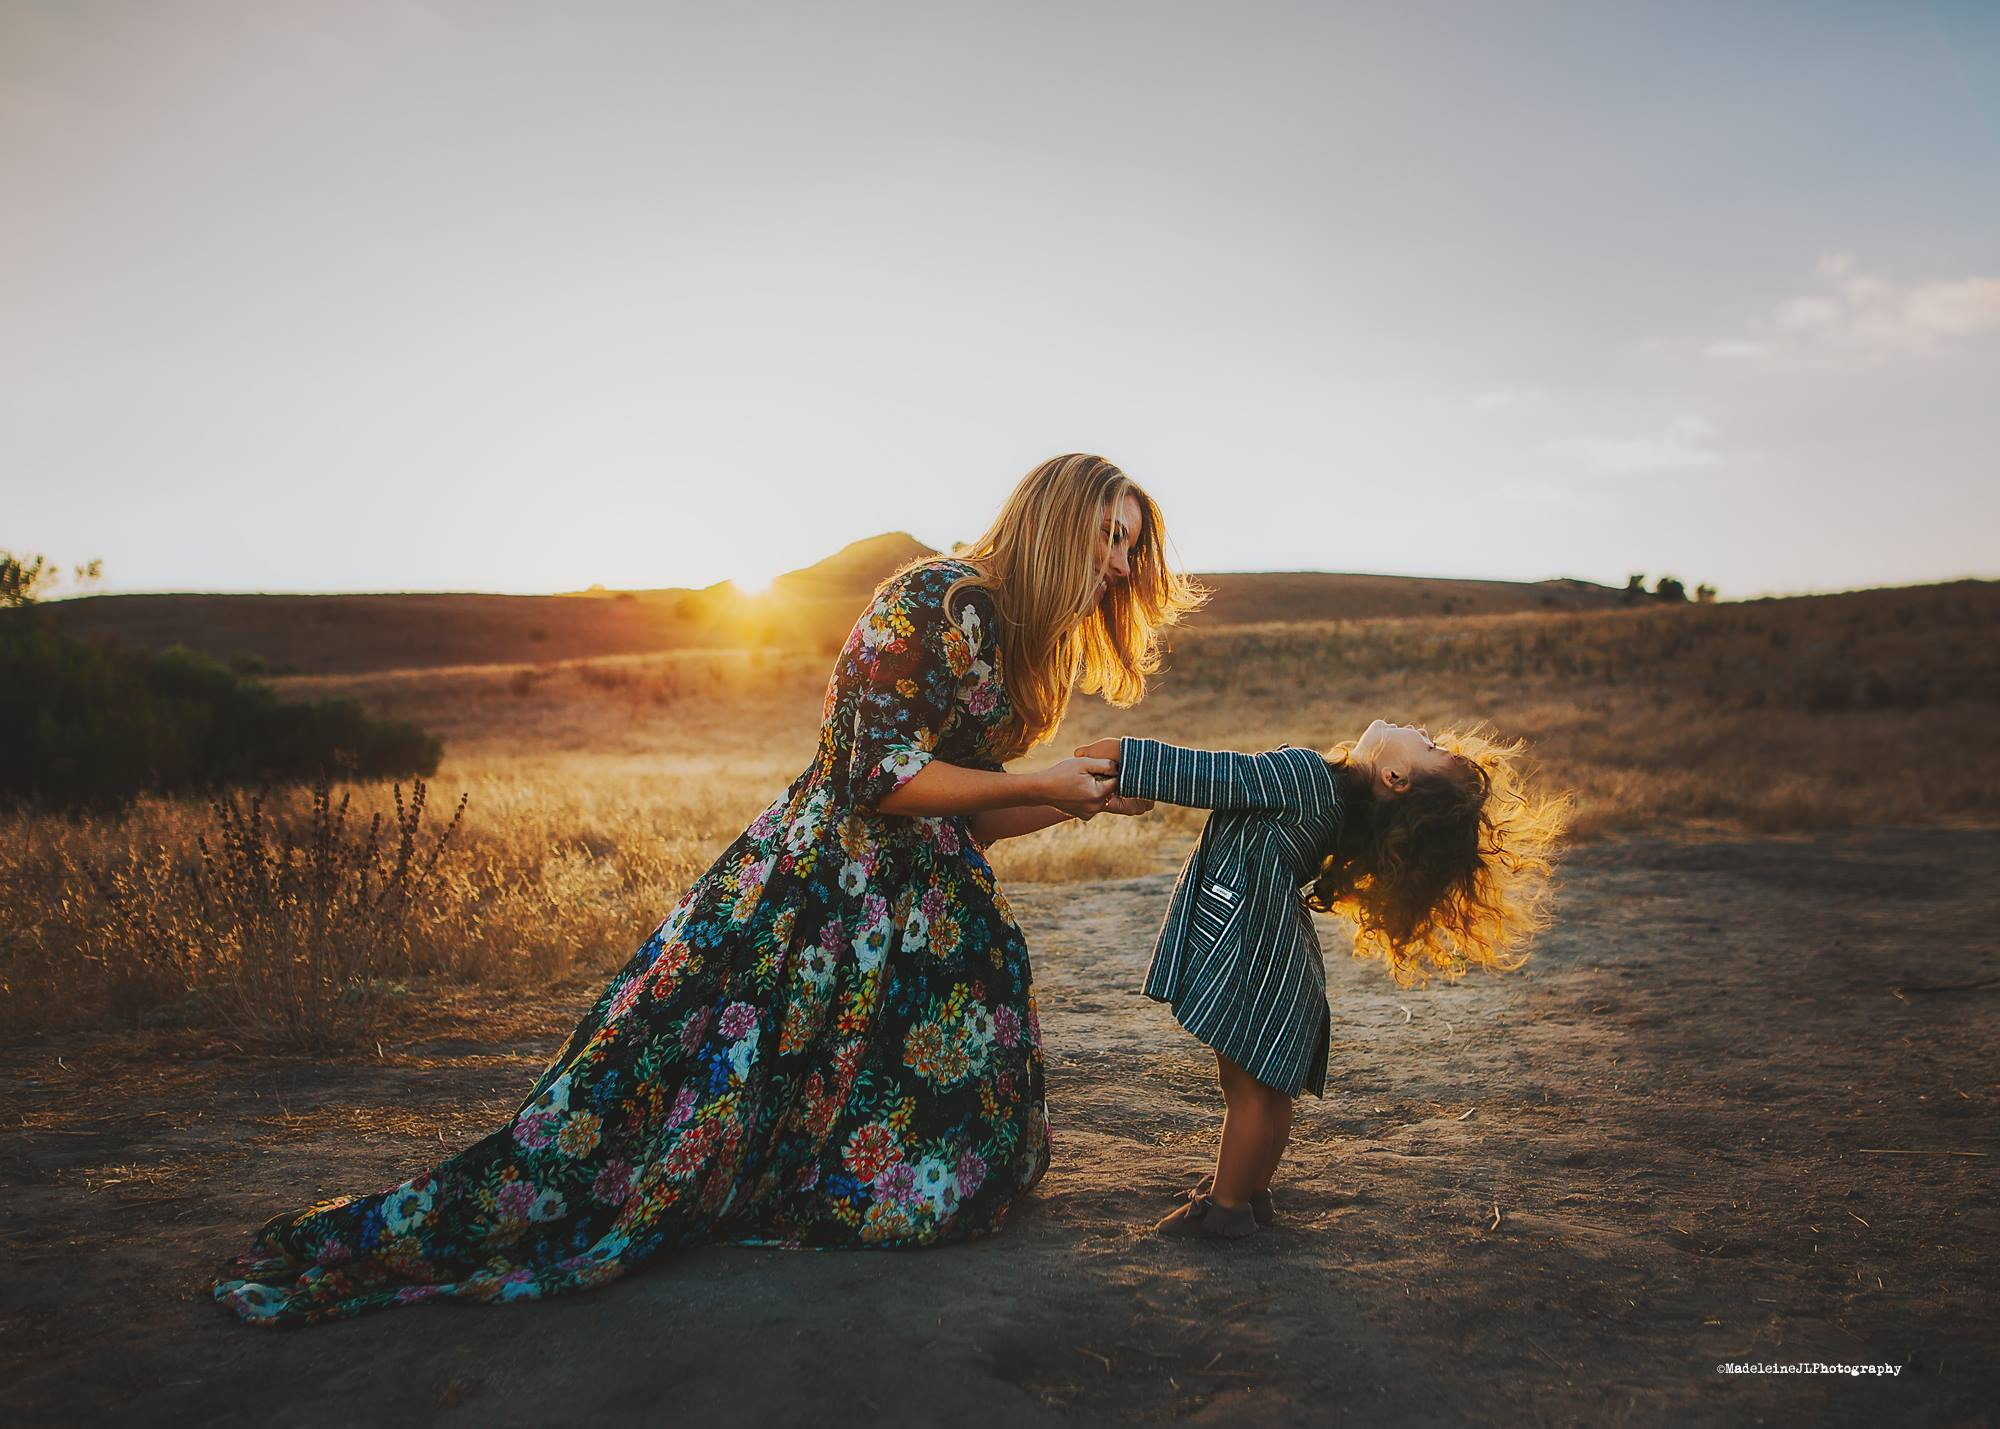 mother and daughter picture ideas, daily fan favorite